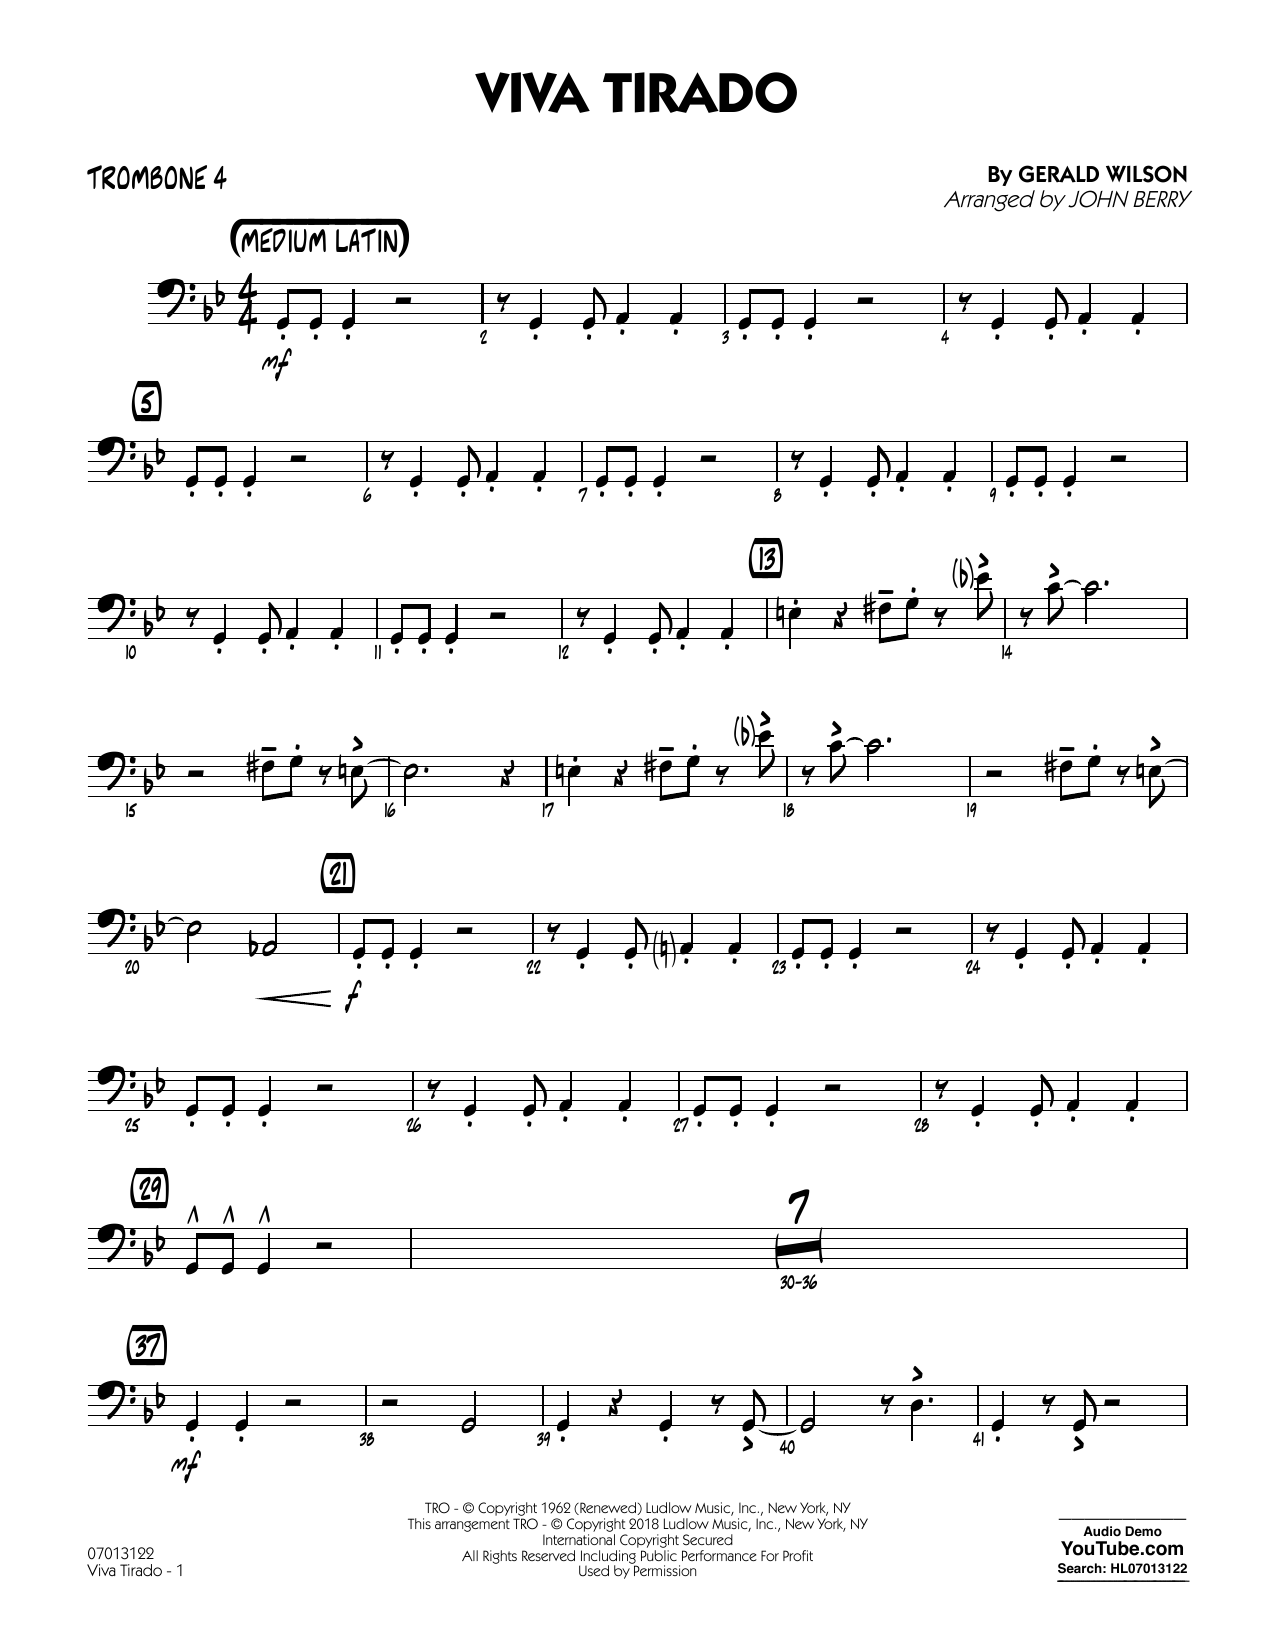 John Berry Viva Tirado - Trombone 4 sheet music notes and chords. Download Printable PDF.